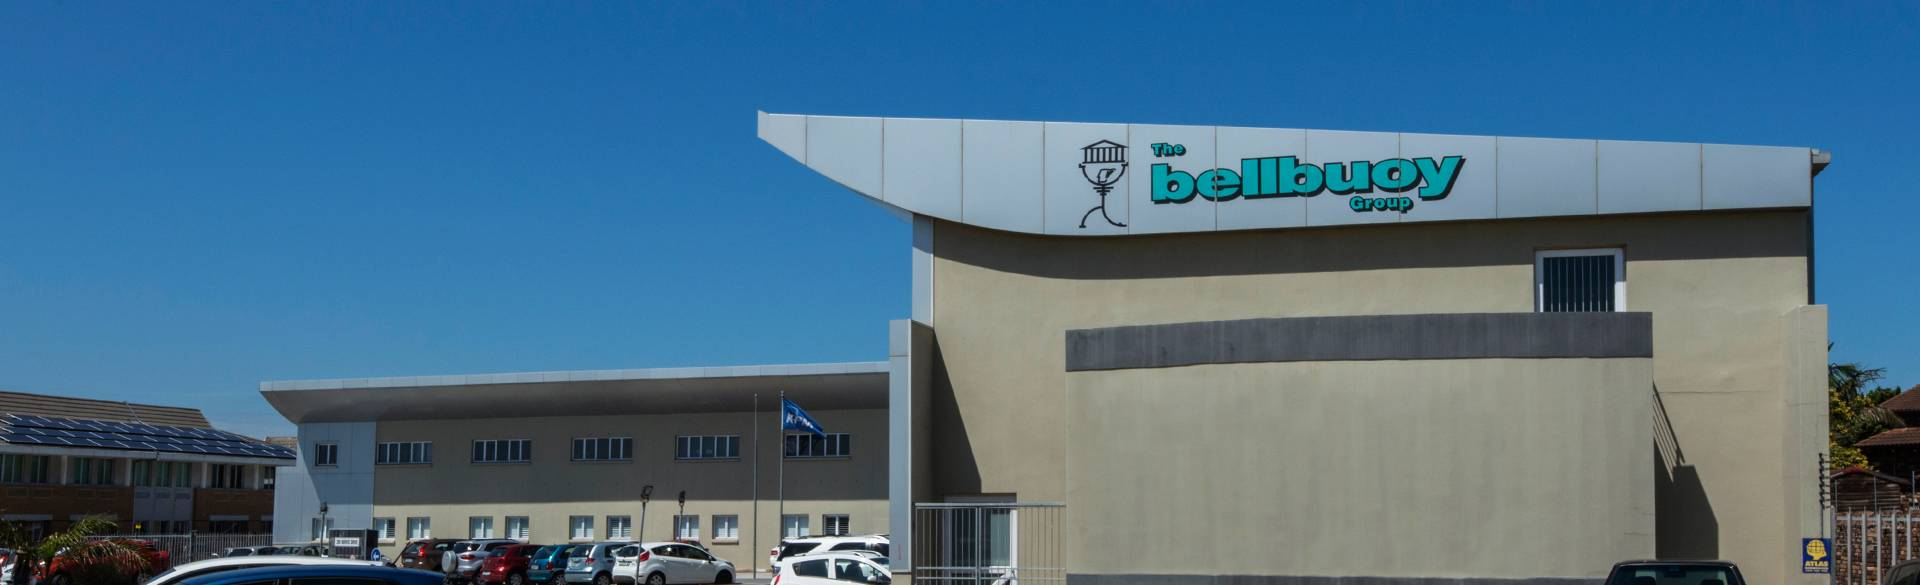 Bellbuoy-property-management-port-elizabeth-facilities-boardroom